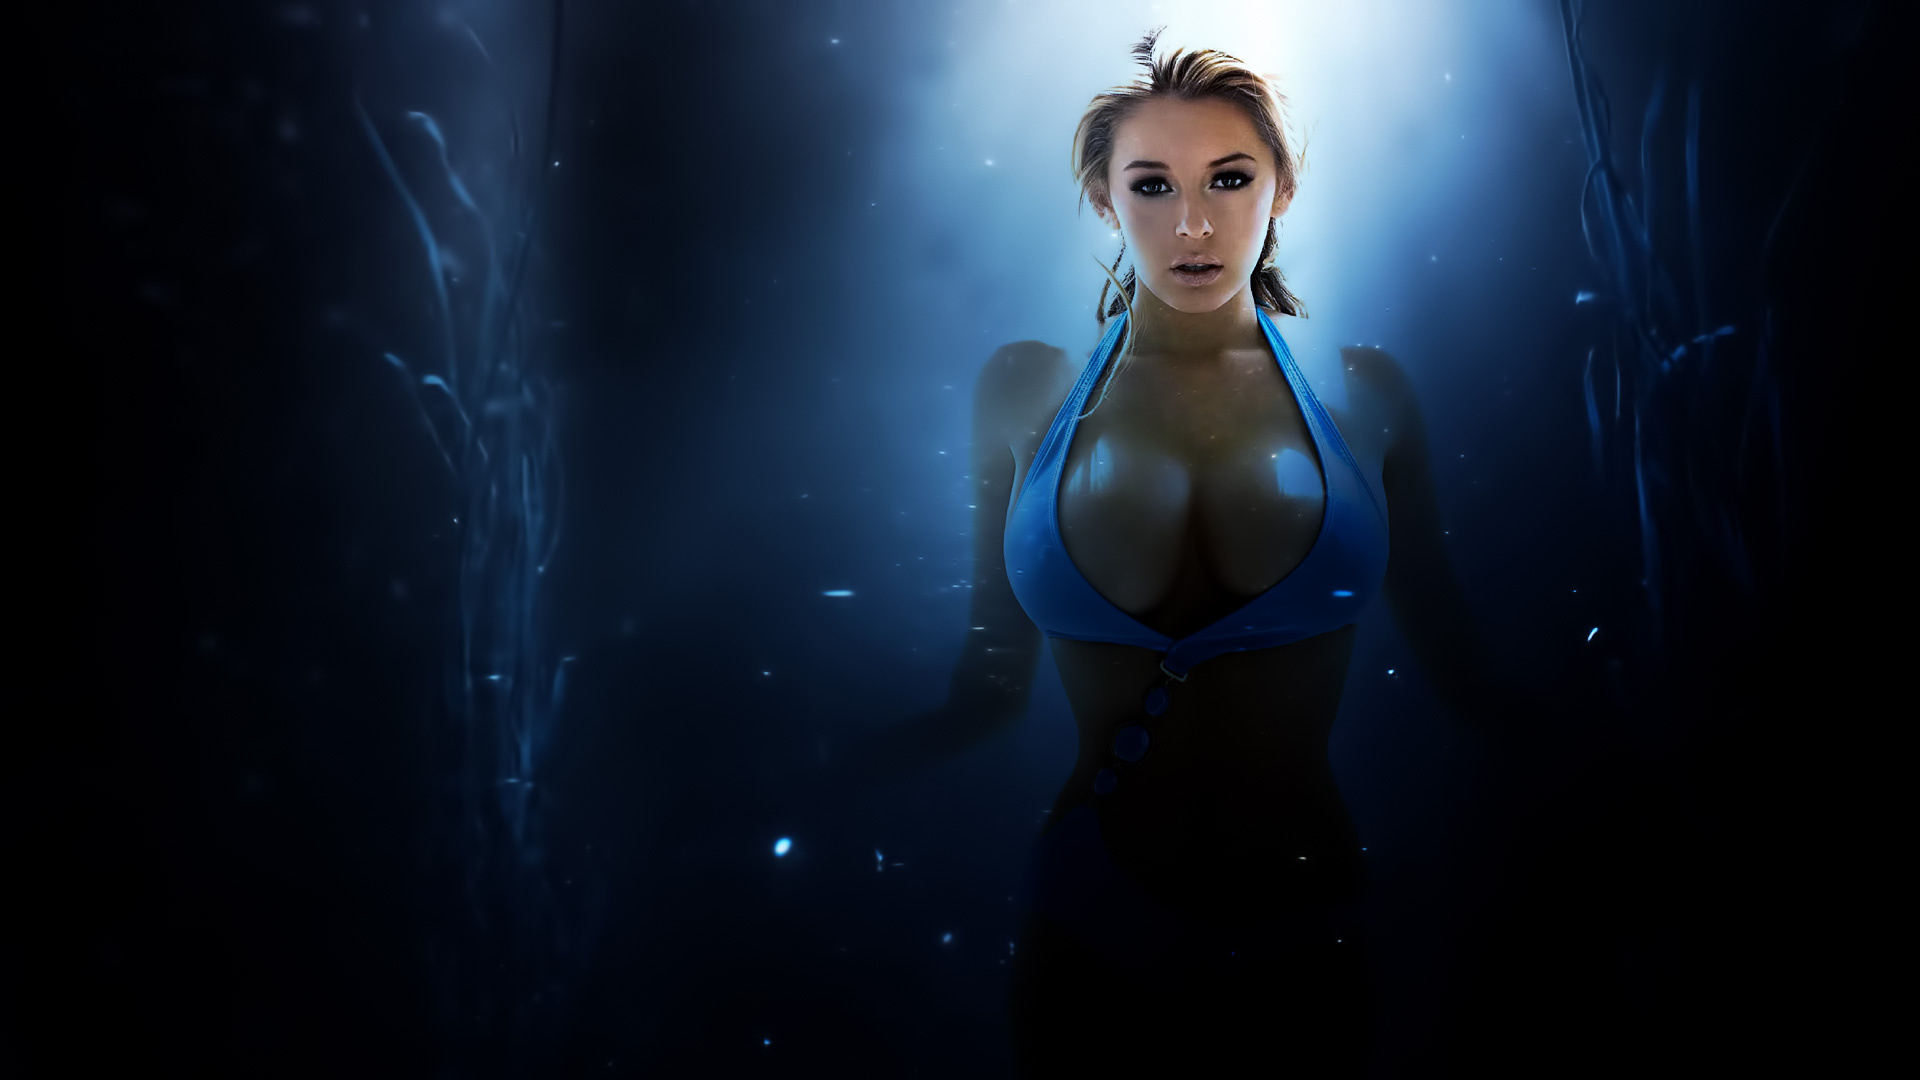 Ghostly Keeley Hazell Wallpaper by iamsointense on deviantART